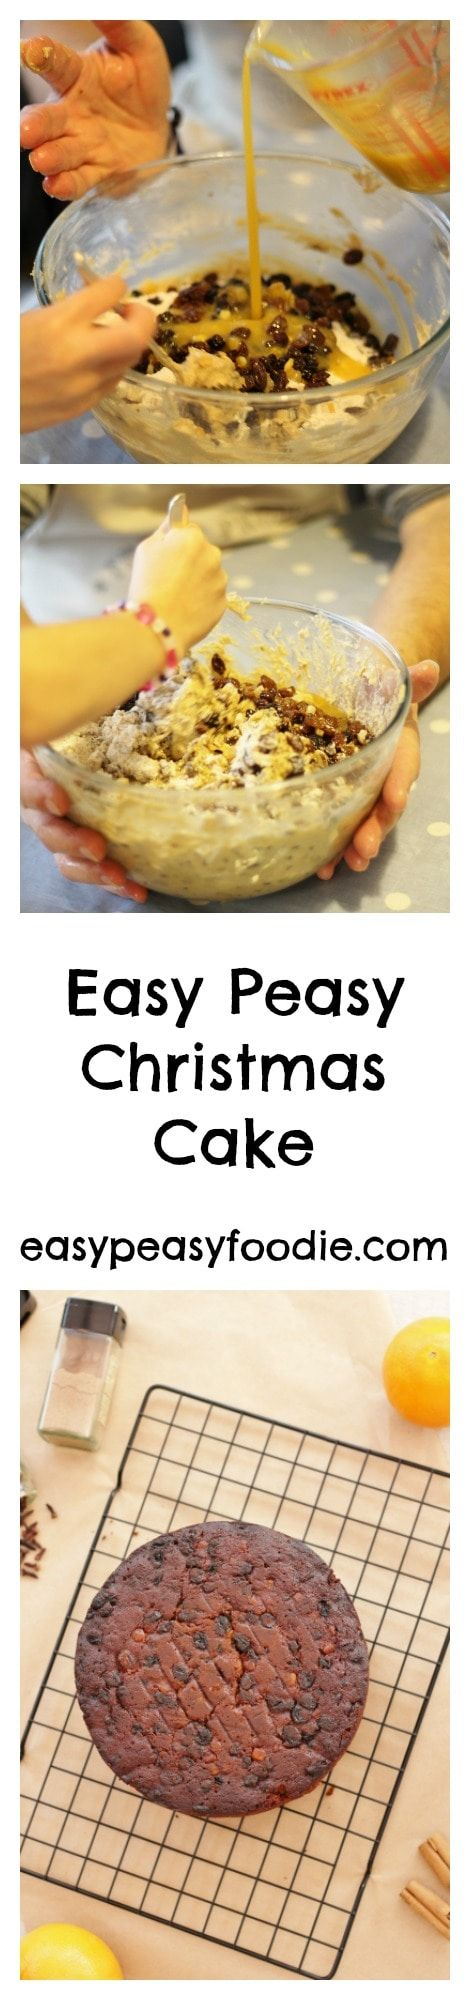 This Easy Peasy Christmas Cake is a well tried and tested family recipe that has stood the test of time (several decades in my family). It doesn't need feeding and so is suitable to give to kids - if they'll eat it!! #christmascake #easychristmascake #easypeasychristmascake #homemadechristmascake #easychristmasbaking #christmasbaking #bakingwithkids #easychristmas #easypeasychristmas #easypeasyfoodie